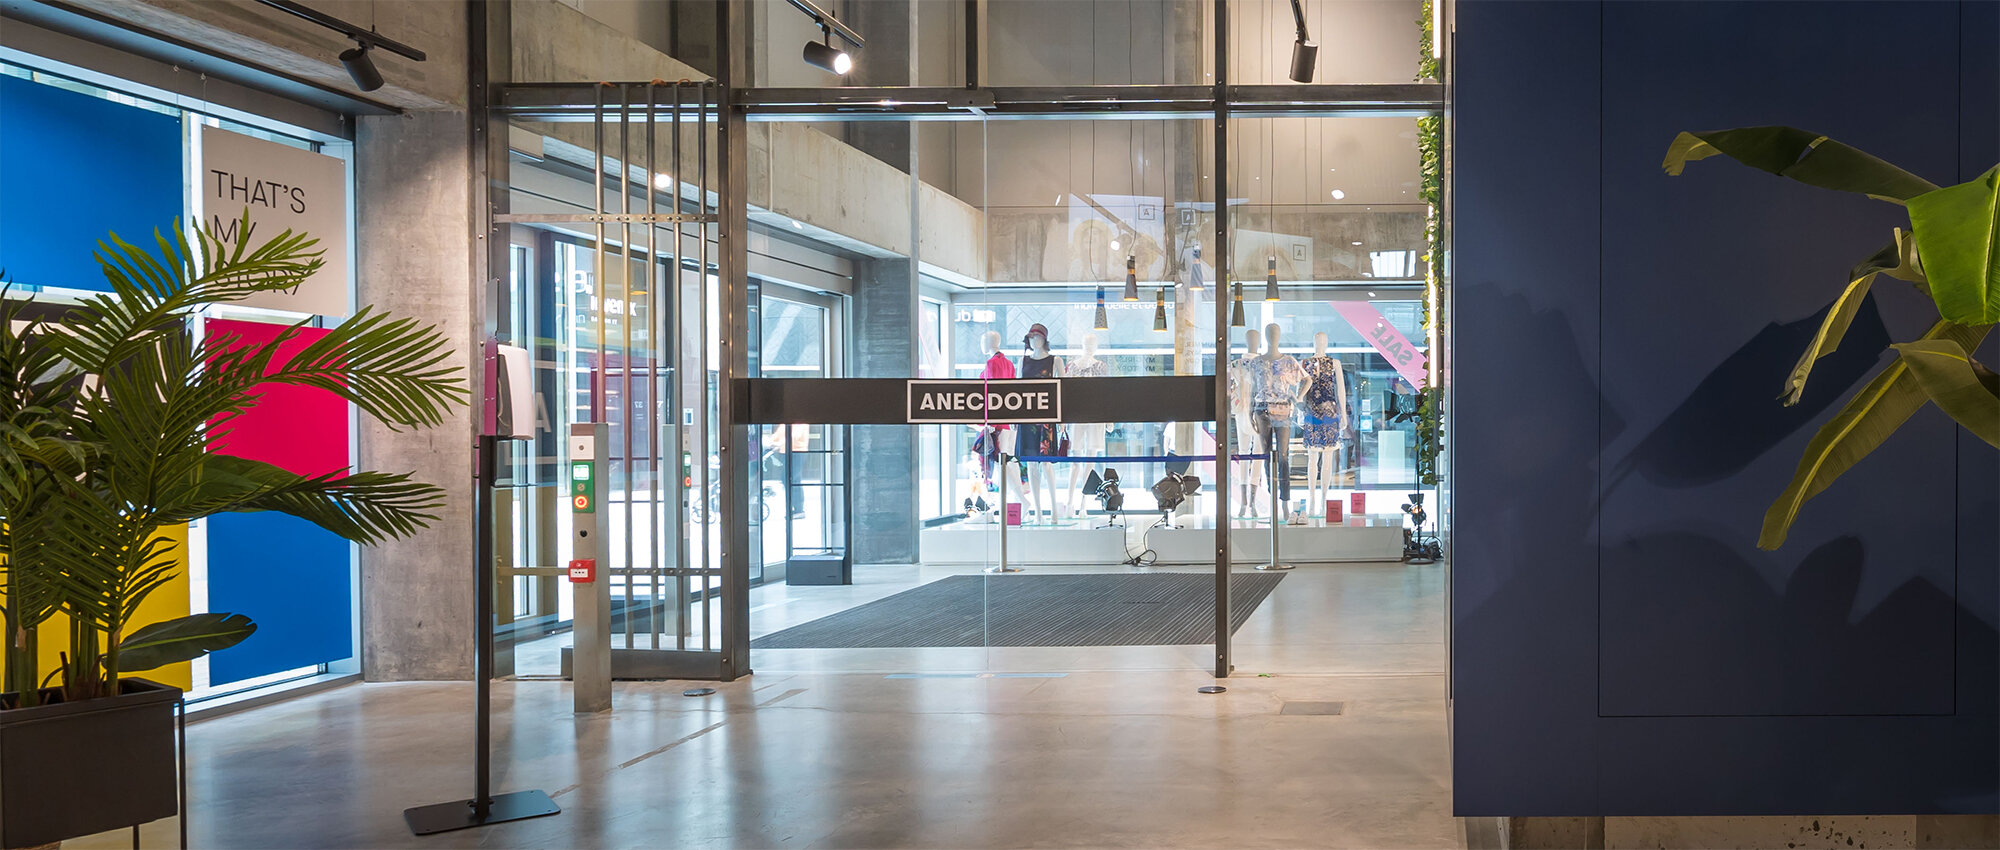 Automatic Door Systems – that is record!